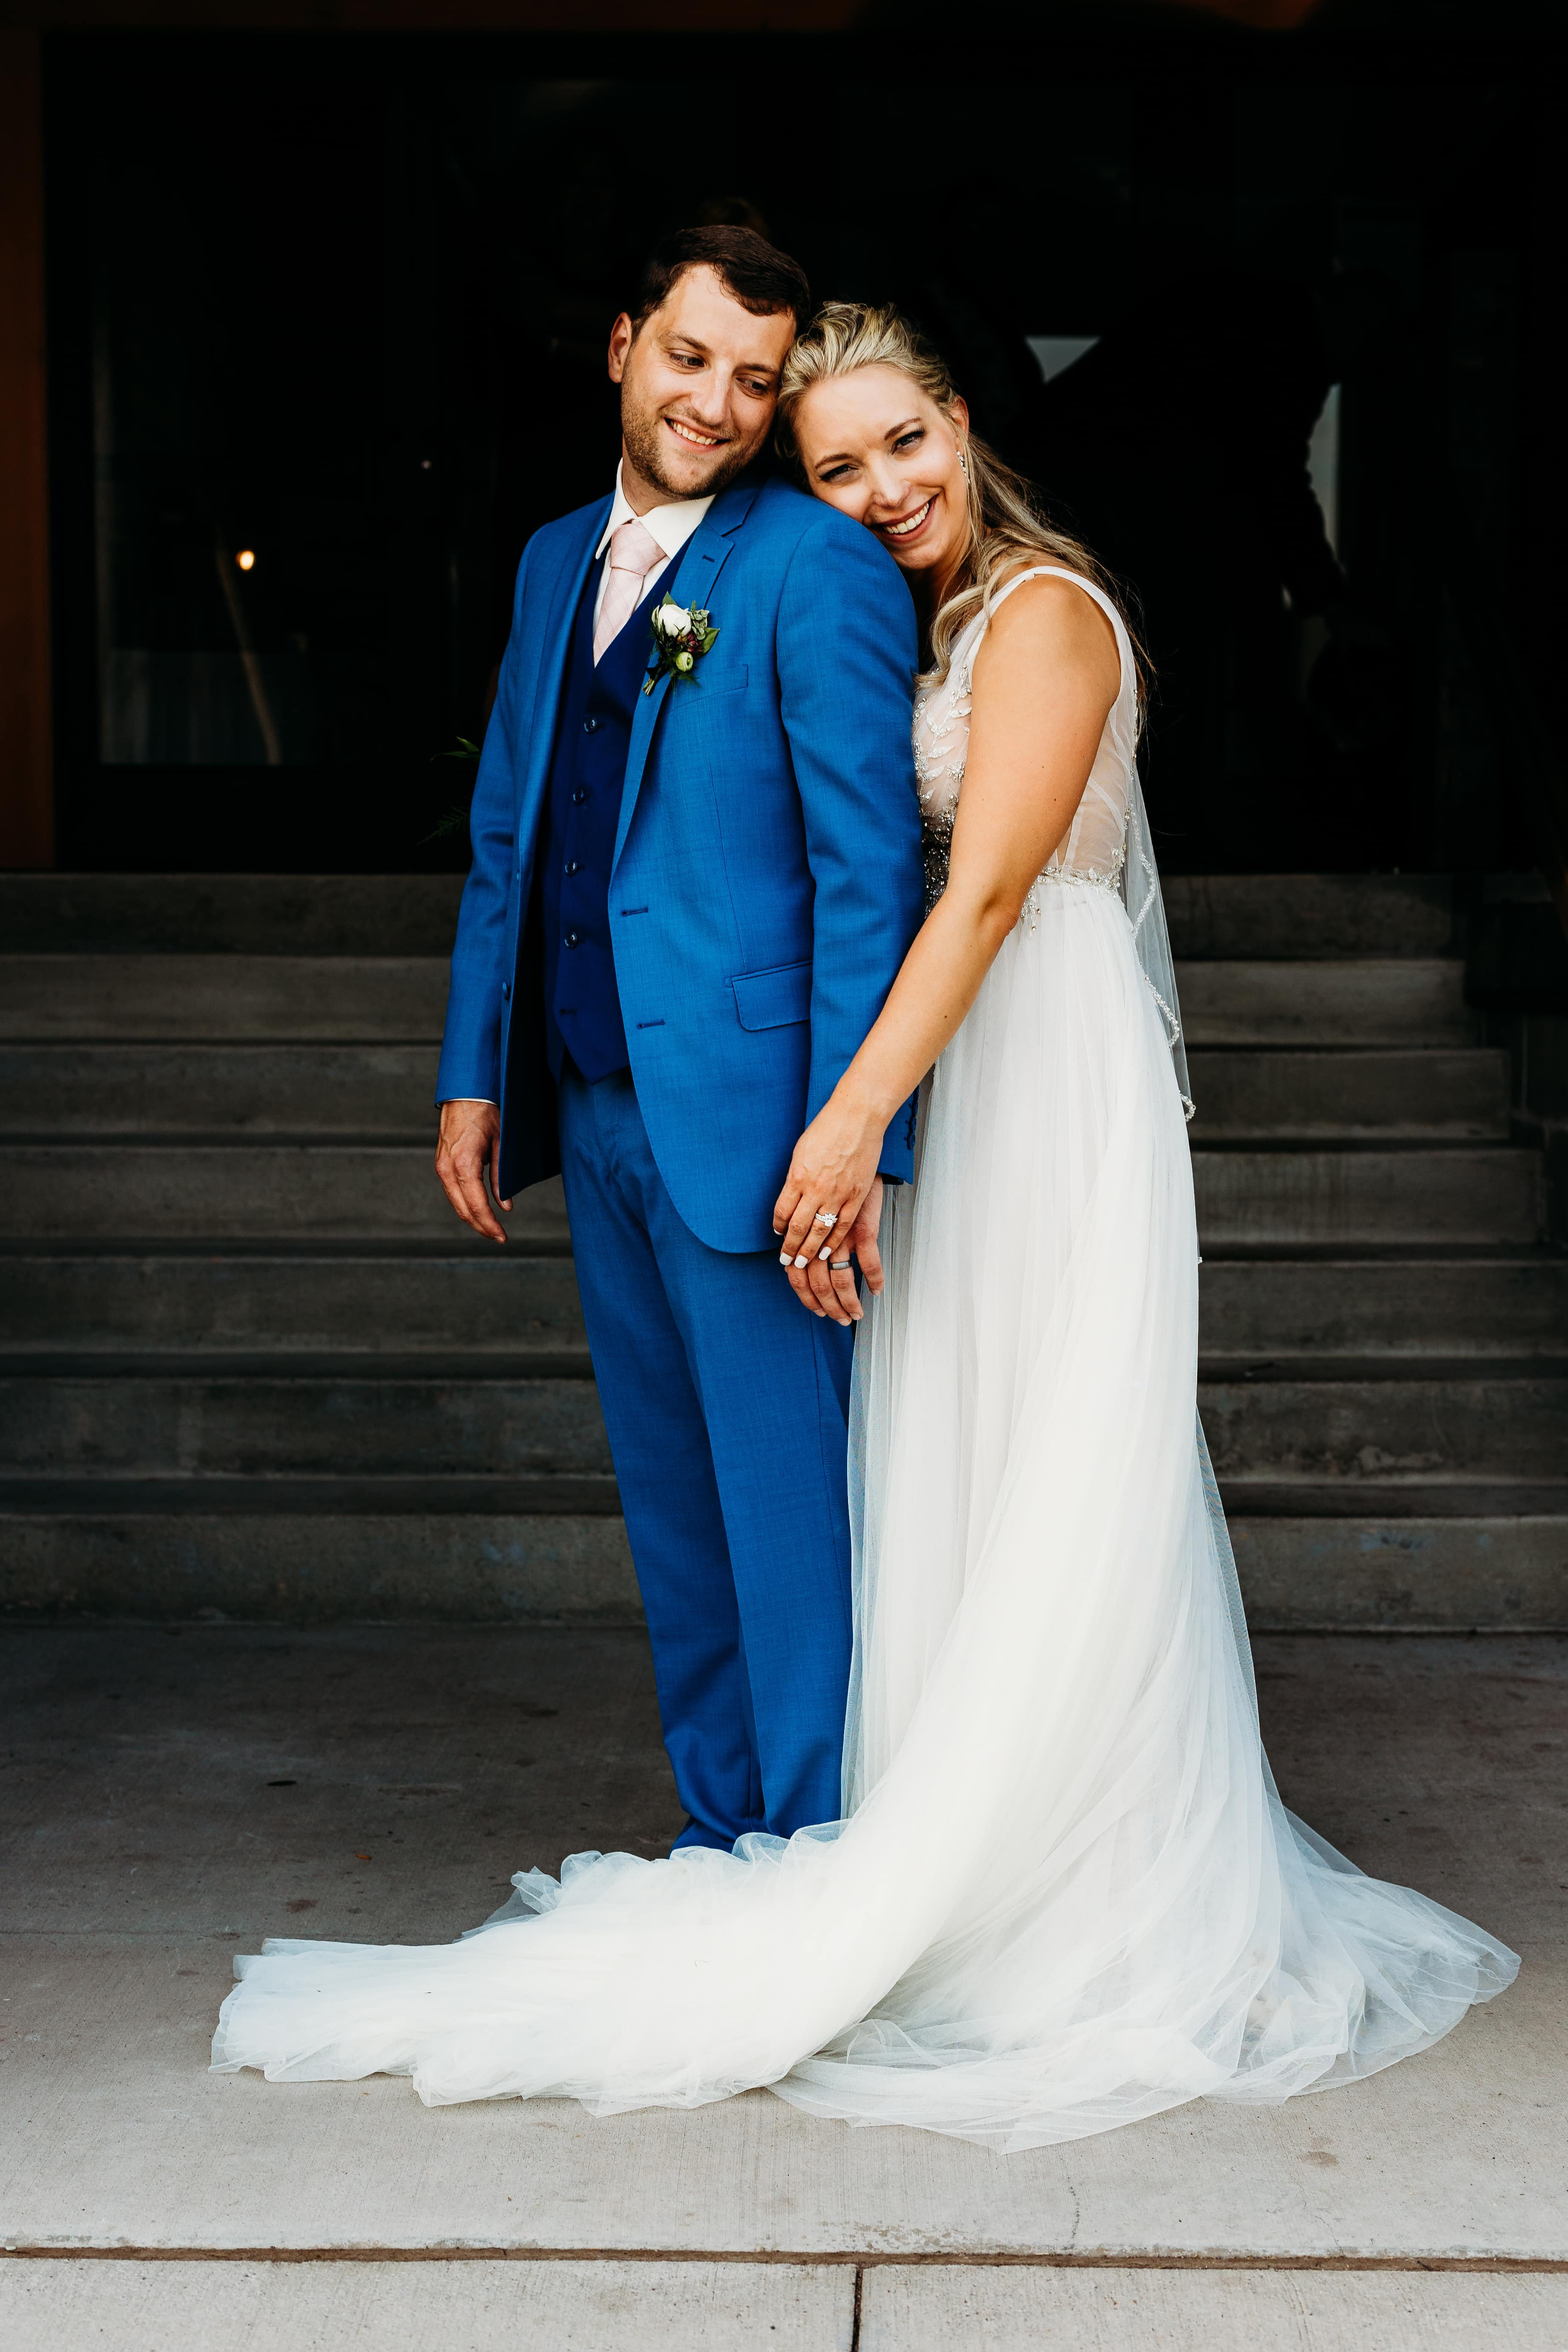 Bride and groom lean on one another and bride smiles at the camera outside her Duluth Malting Building wedding